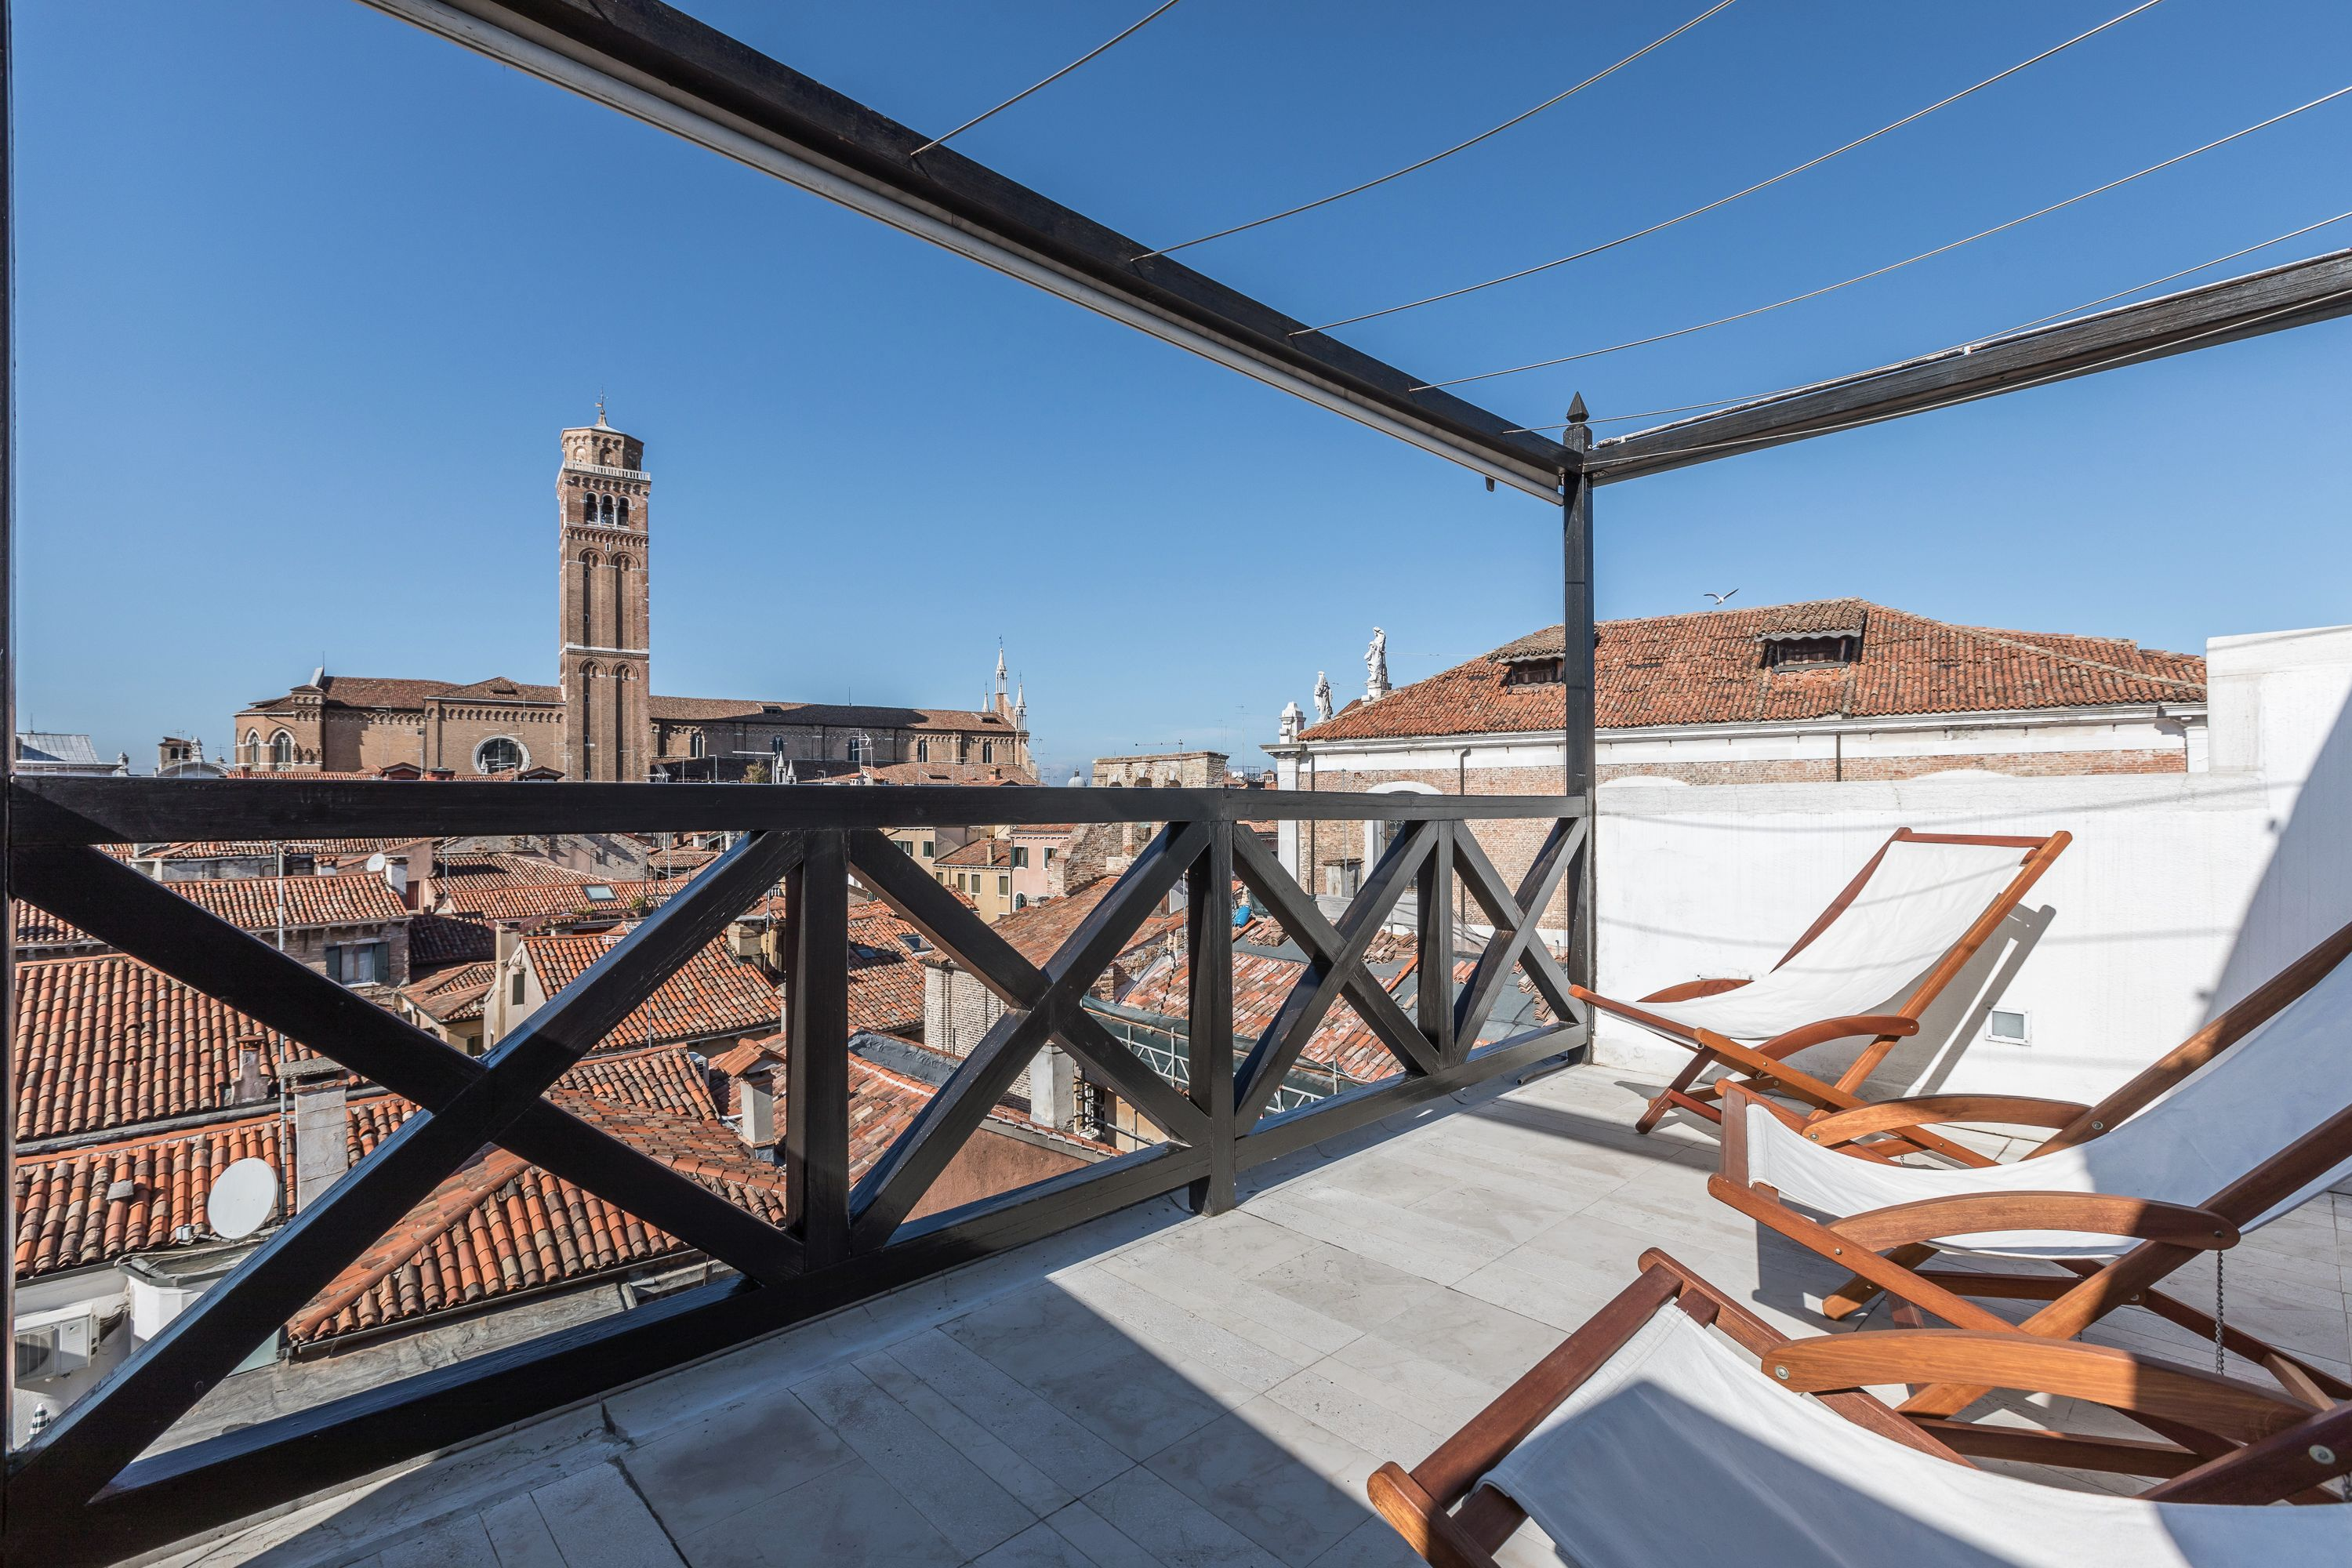 the Dandolo apartment panoramic terrace features a stunning view!